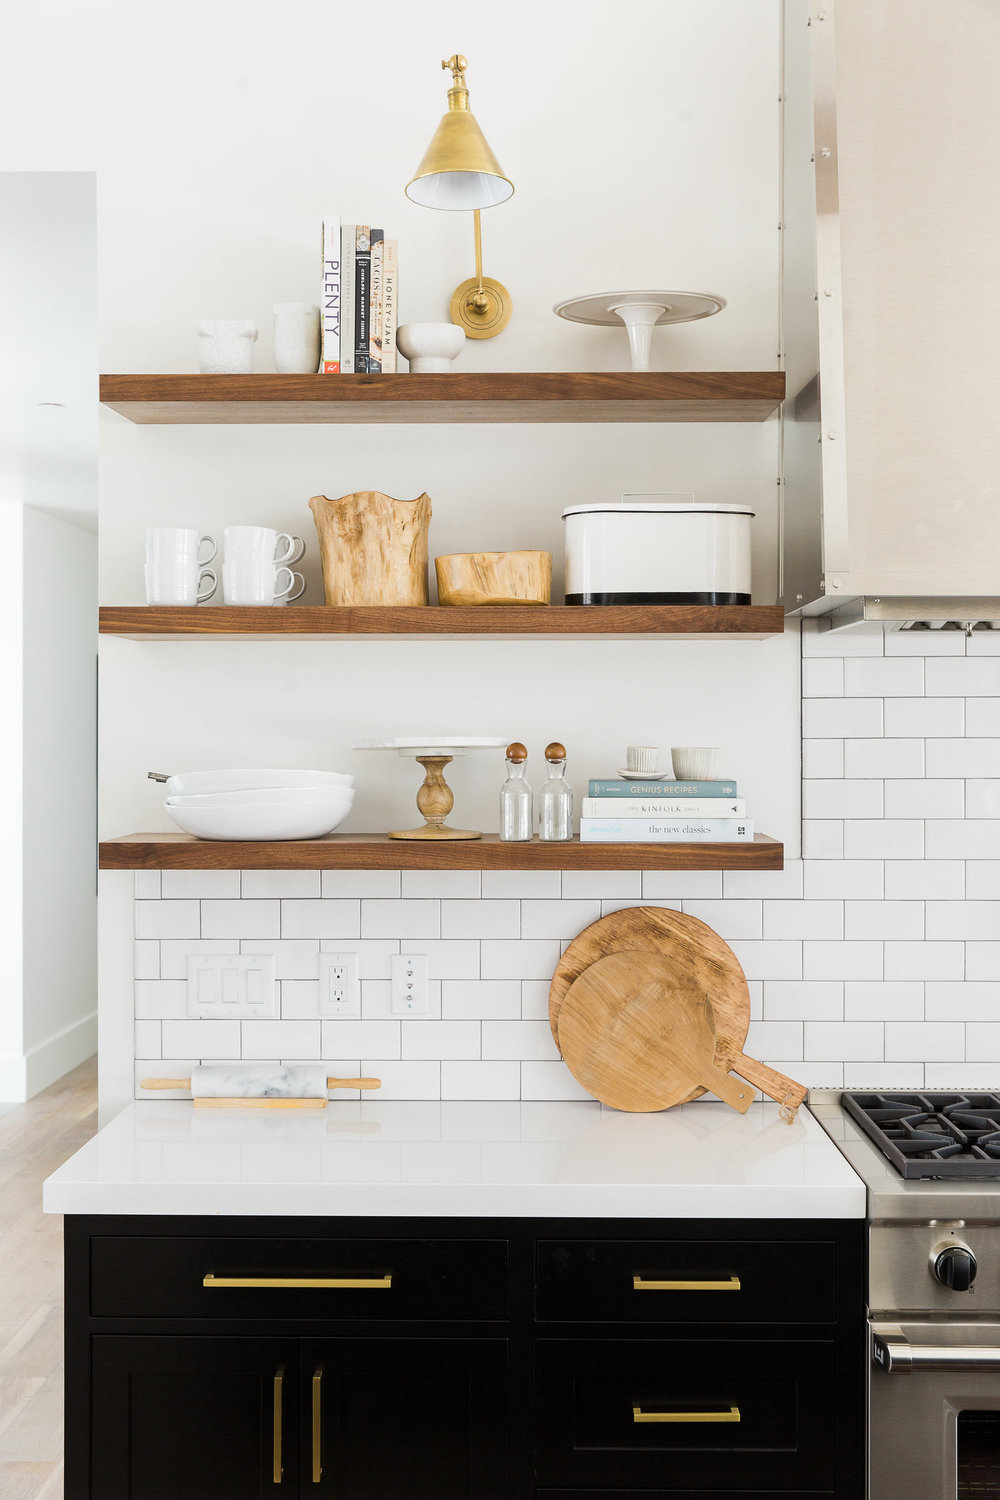 Built in wooden shelves in kitchen